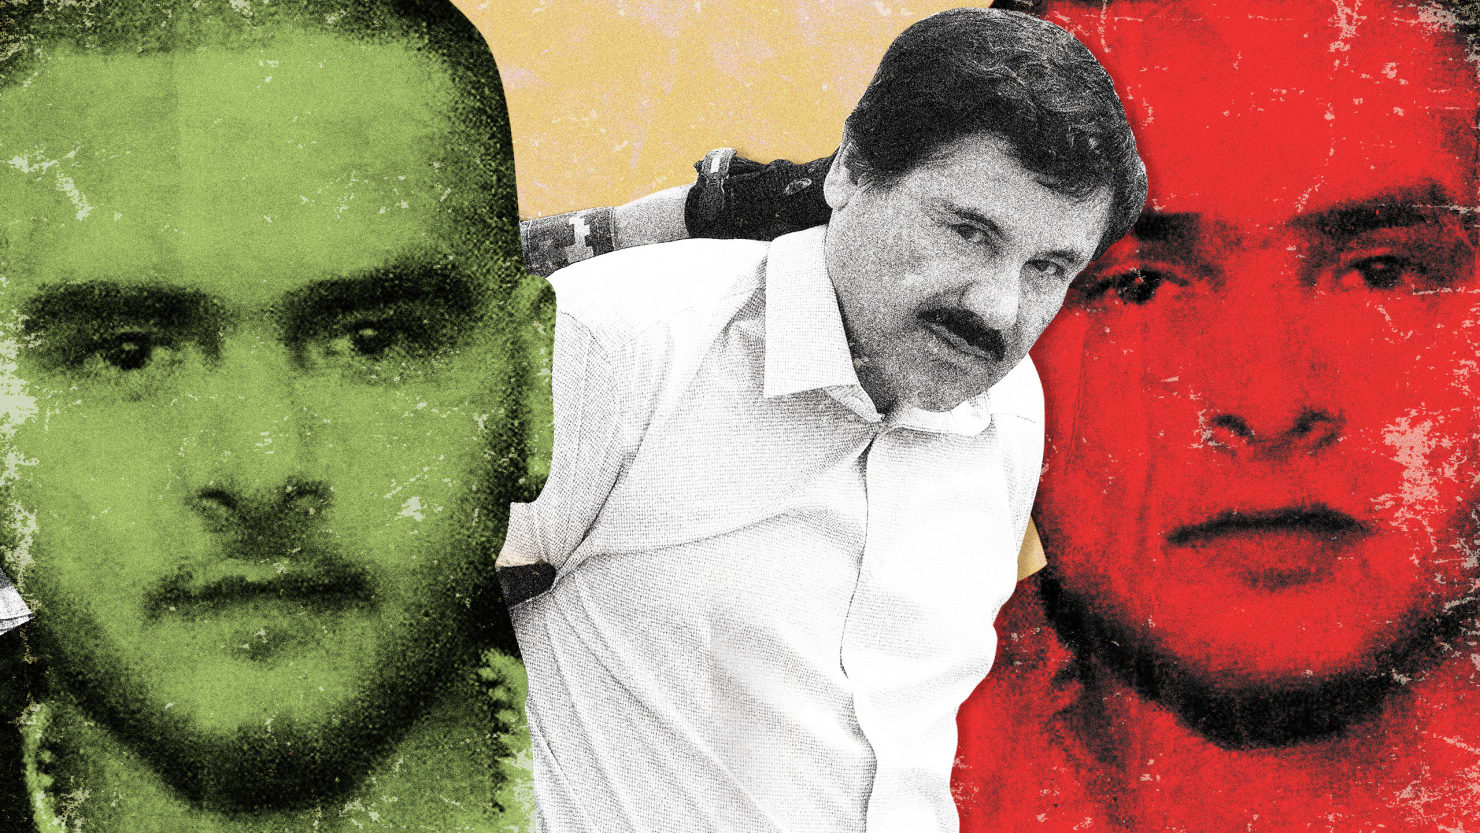 chicago twins junior and peter flores turned on el chapo